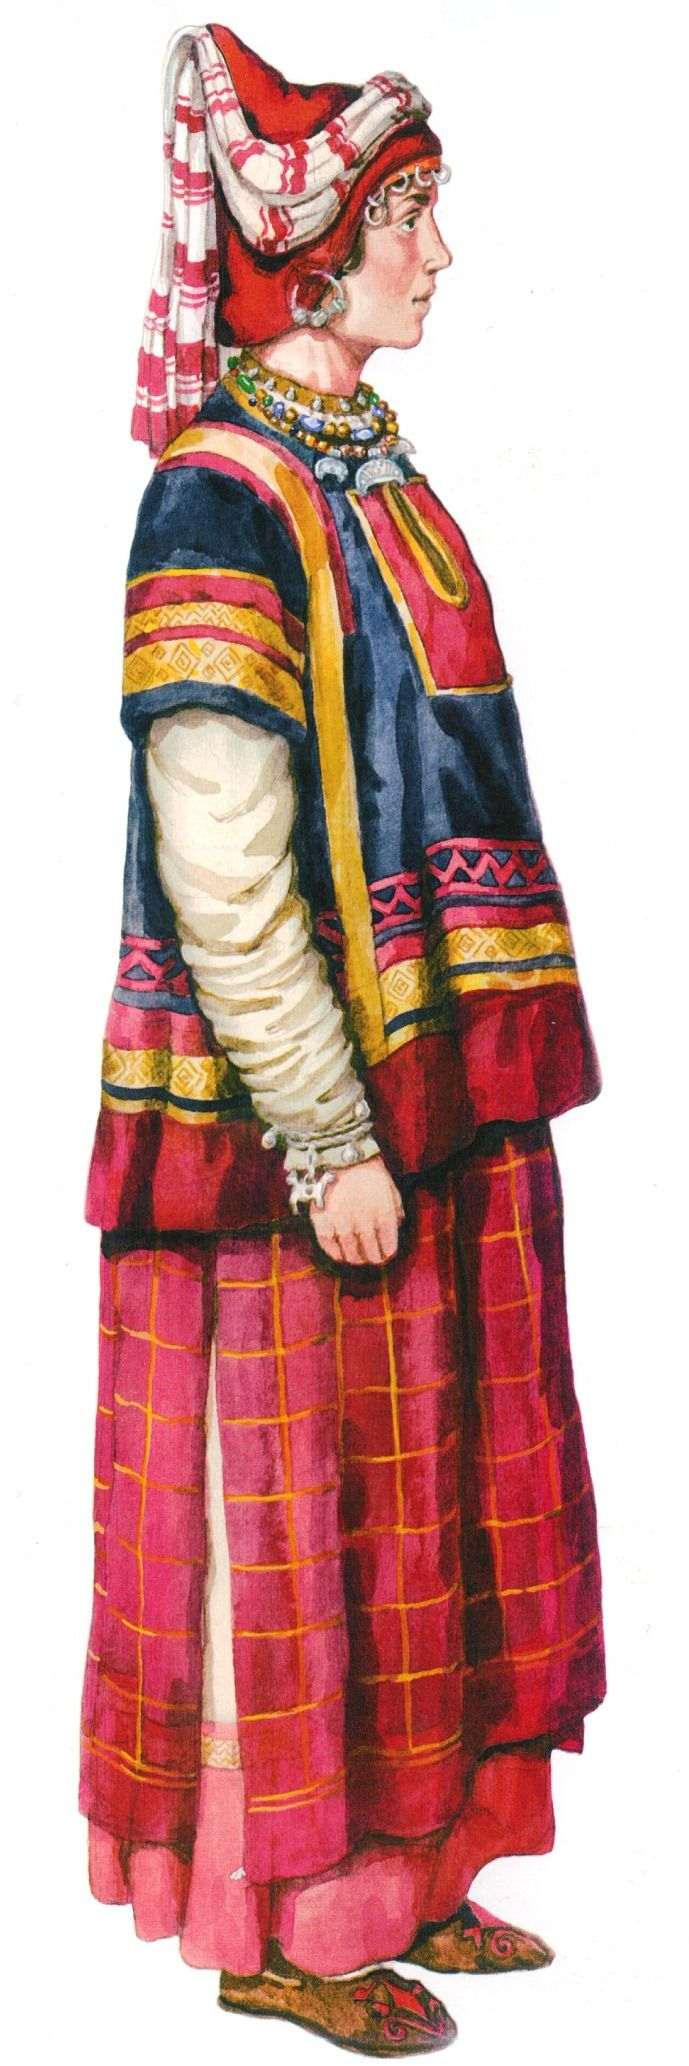 Woman's festive clothes in medieval Russia. VI - IX centuries. #medieval #history #Russian #costume